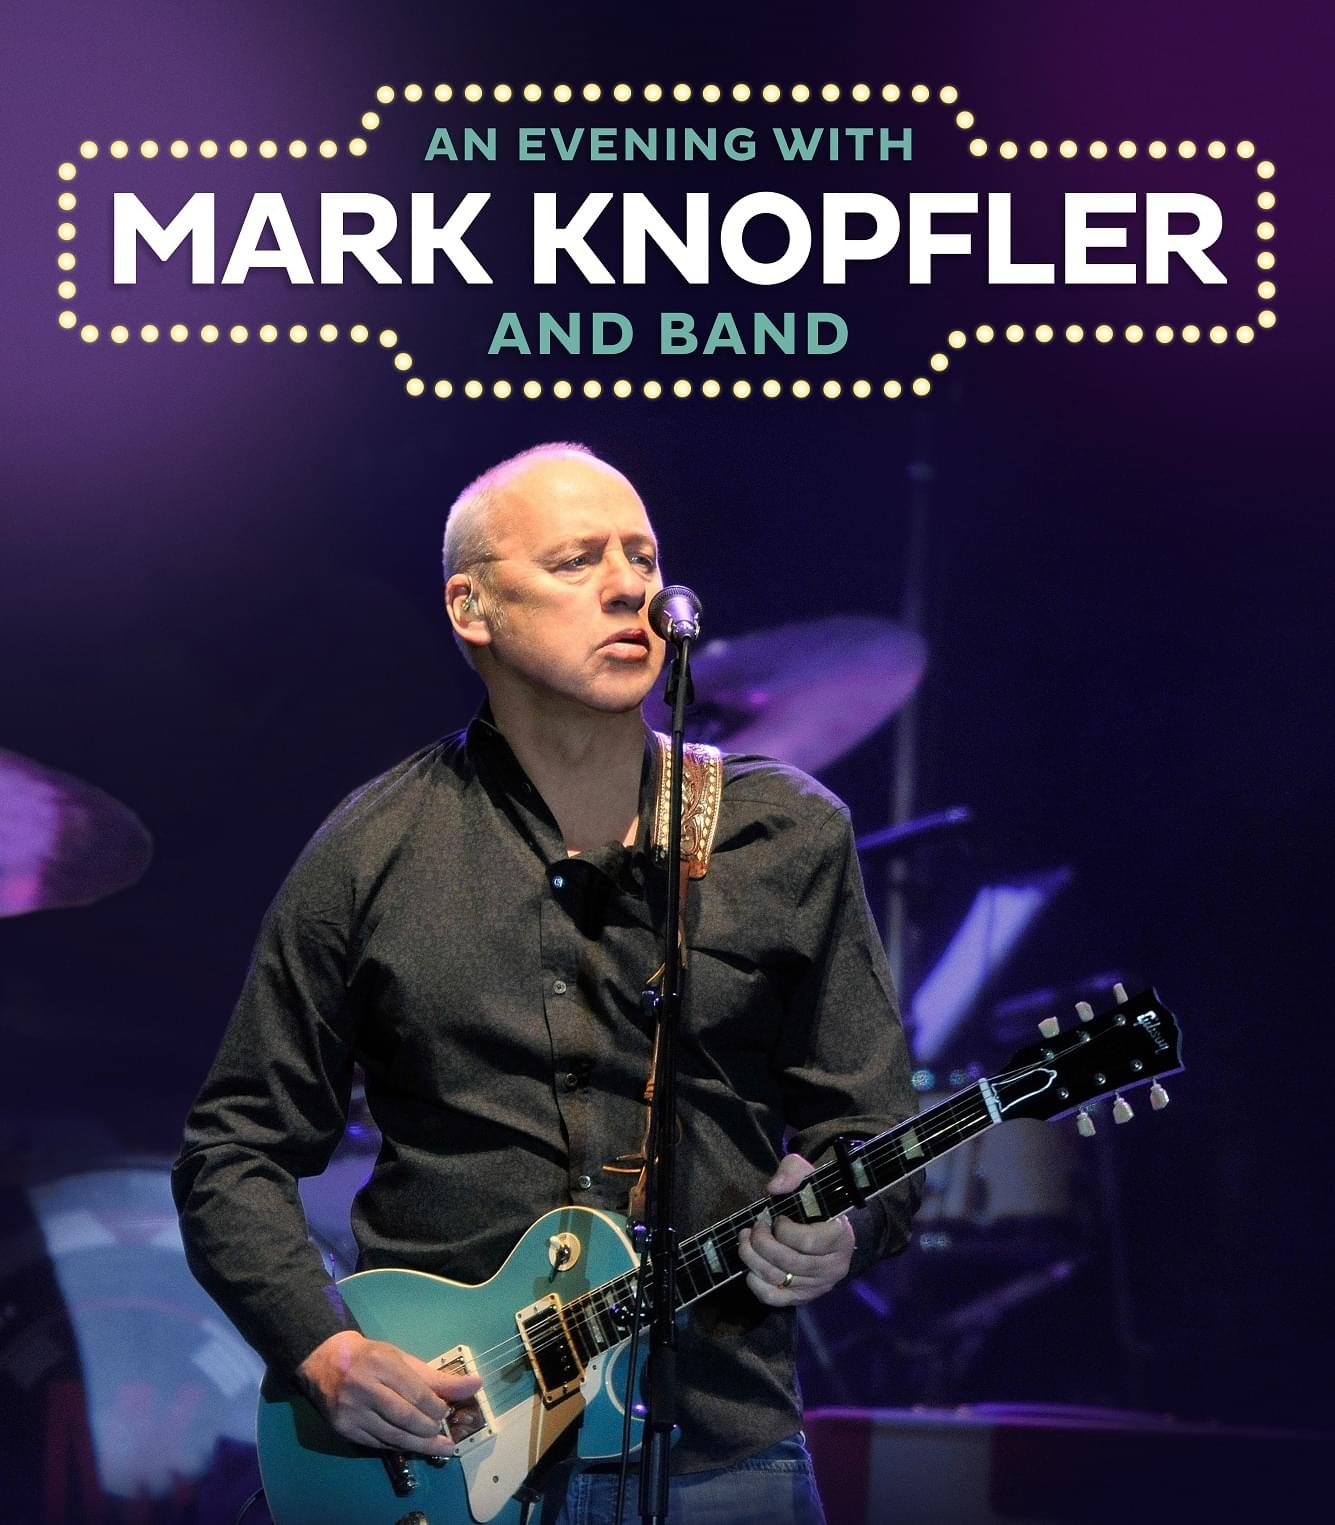 September 4 – Mark Knopfler